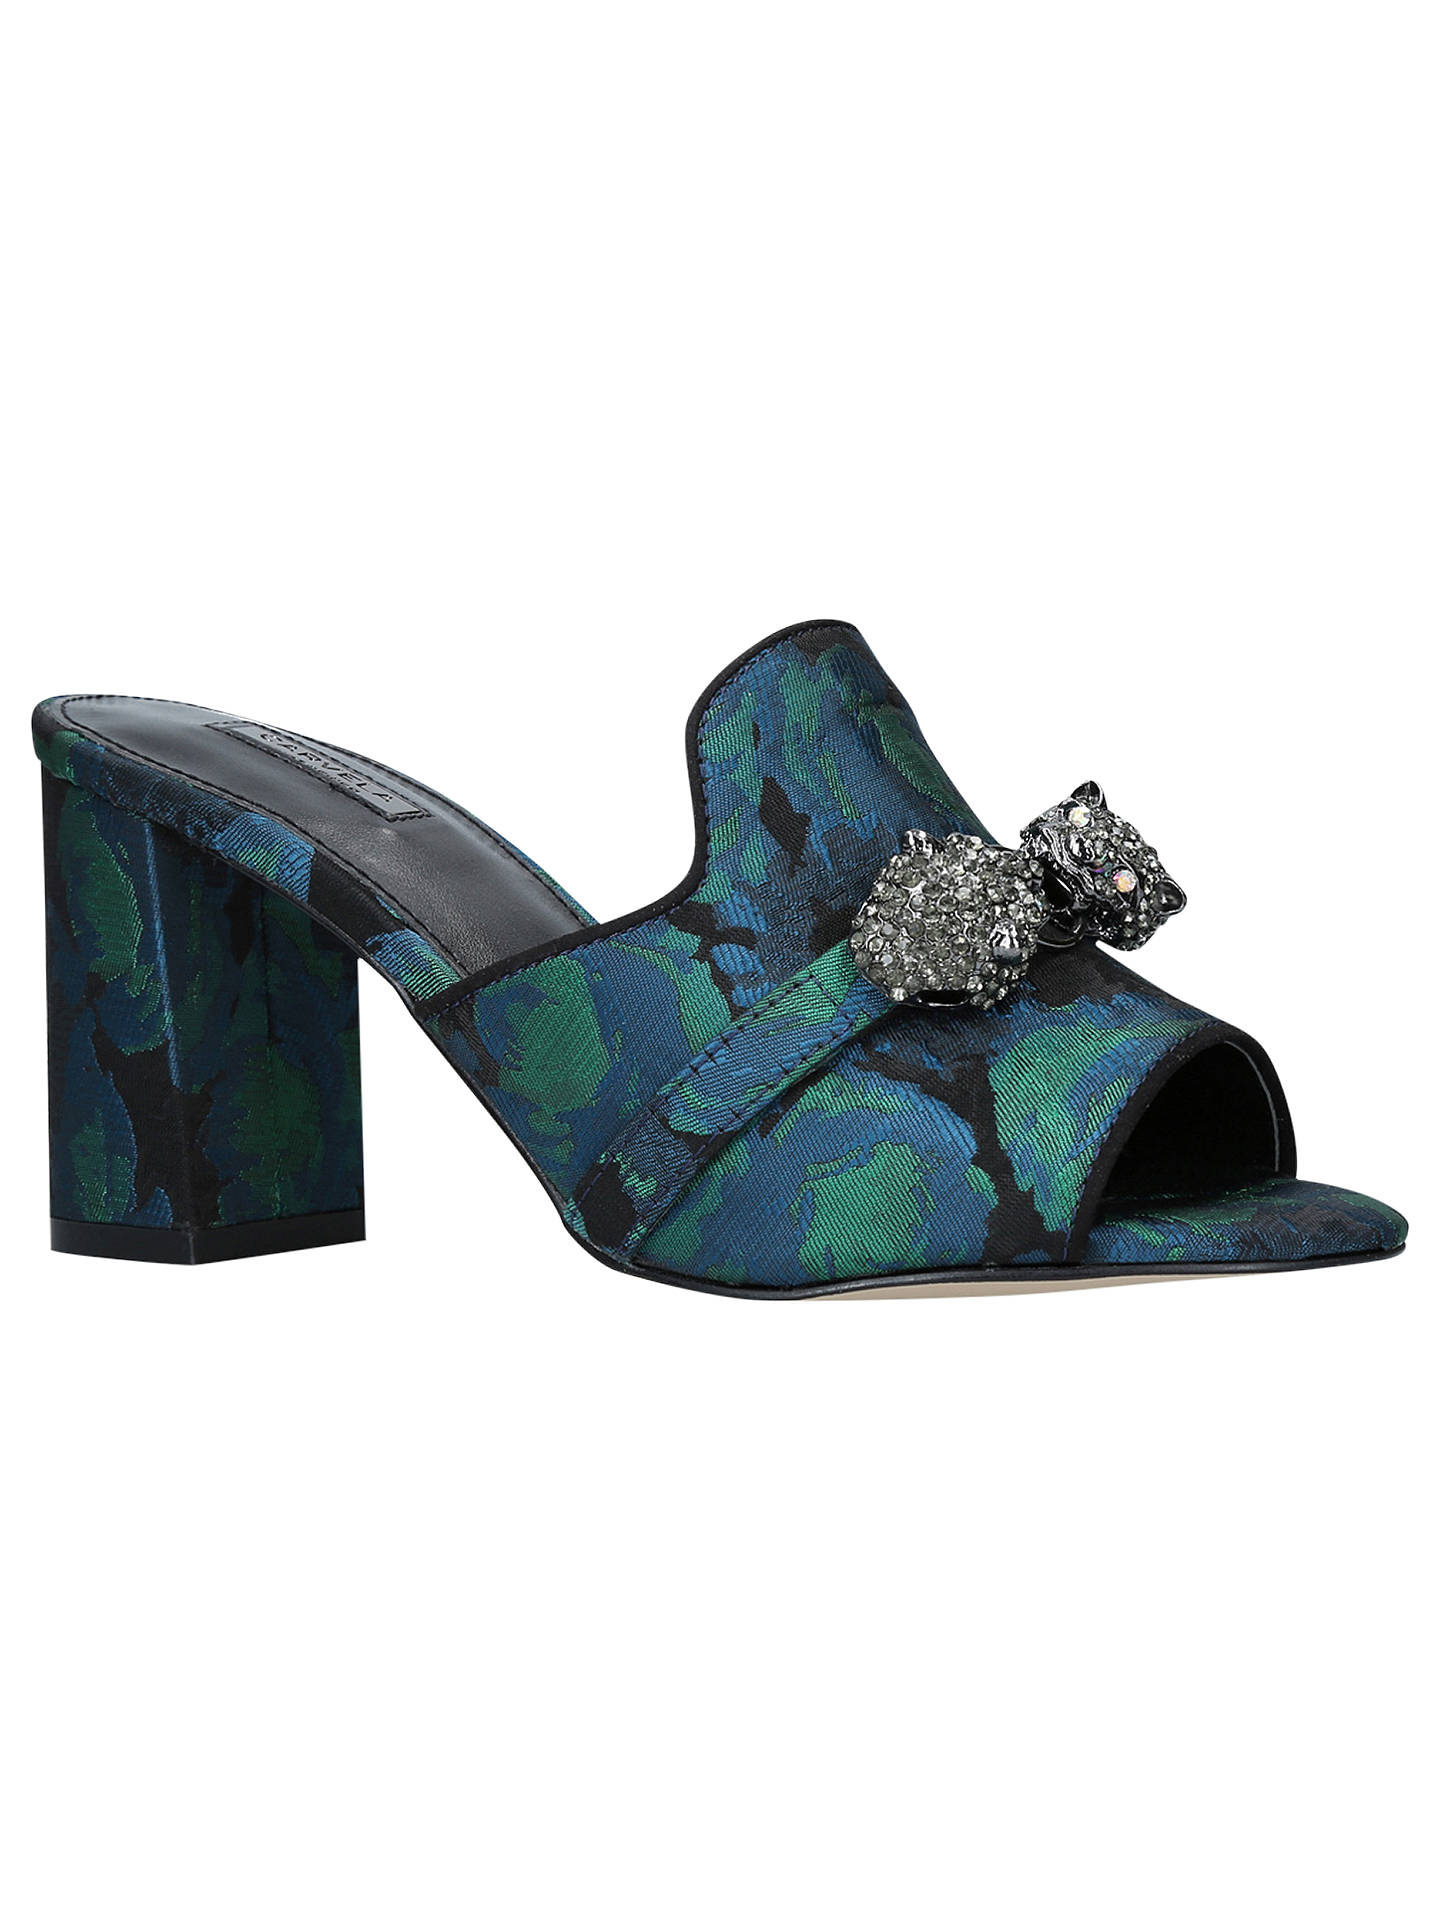 BuyCarvela Growl Block Heel Sandals, Multi/Other, 3 Online at johnlewis.com